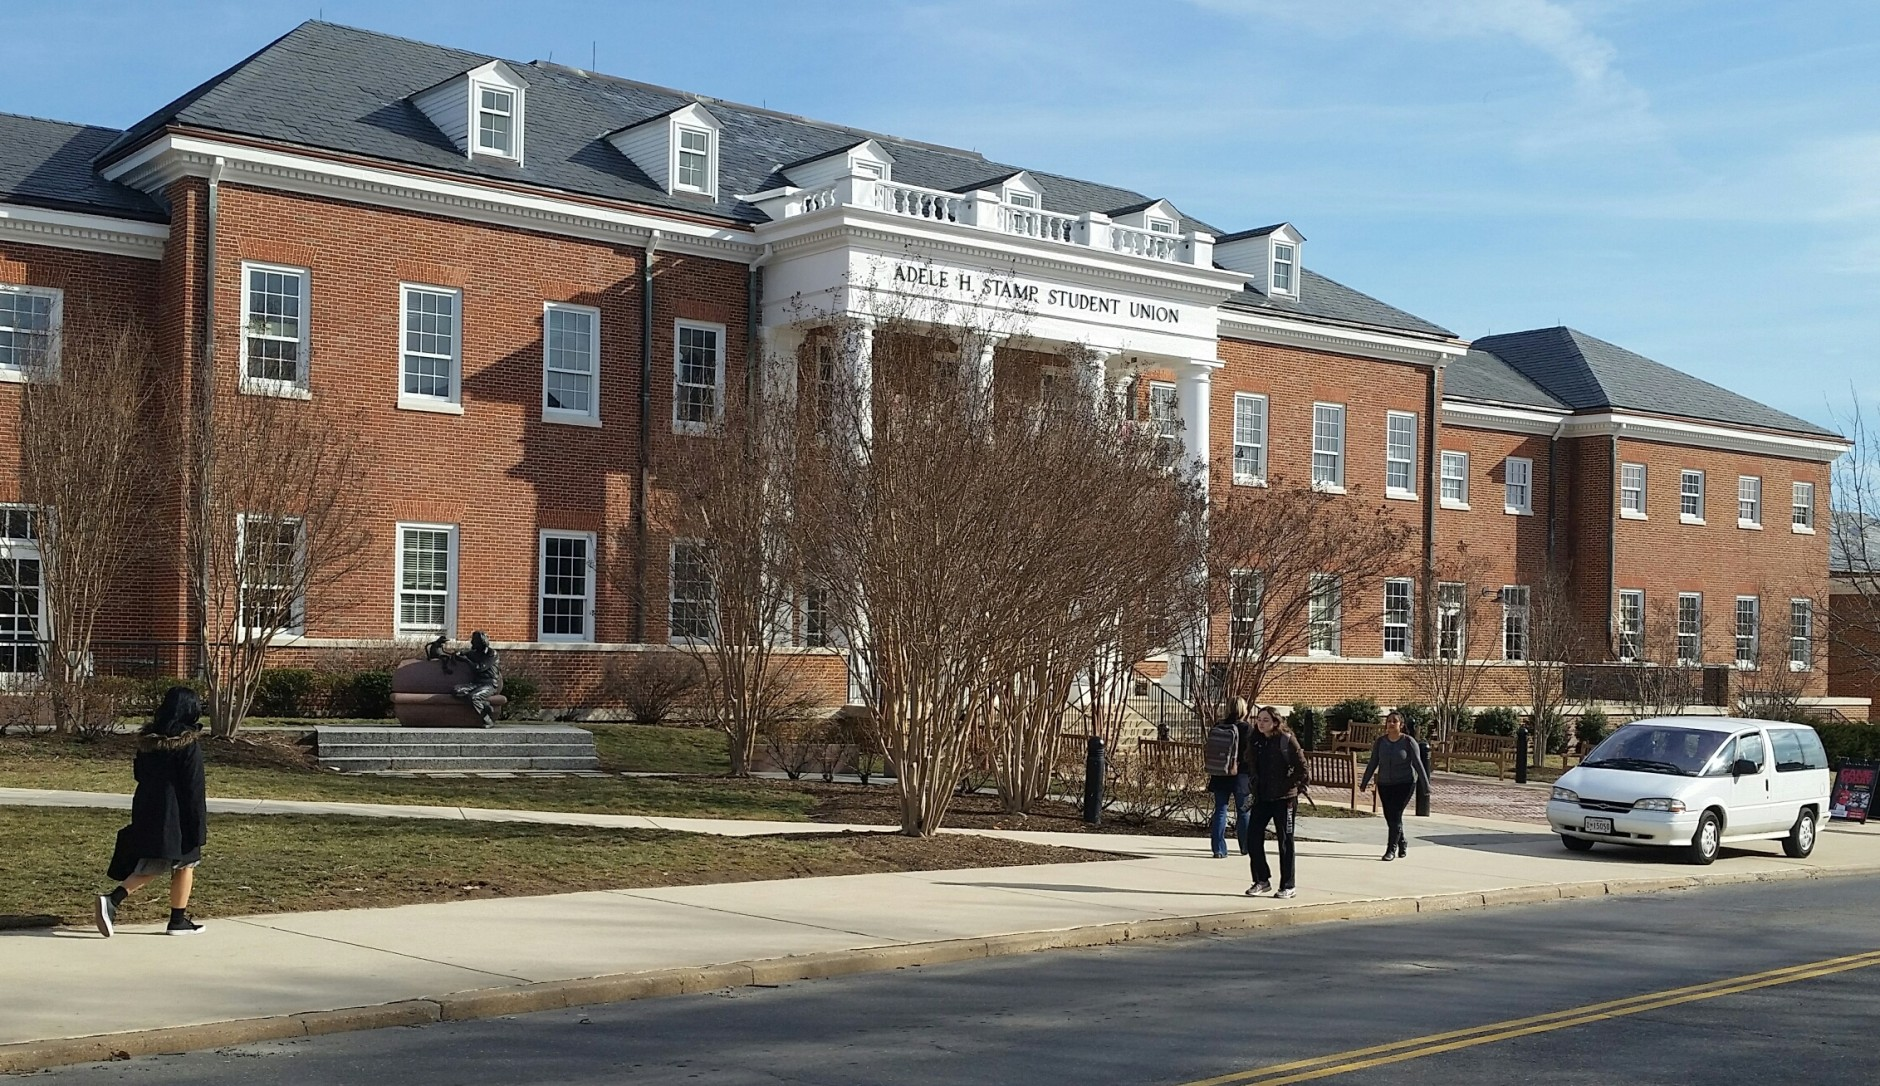 The University of Maryland College Park campus is embroiled in a controversy over a racist and sexist email sent by a student last year. (WTOP/Kathy Stewart)